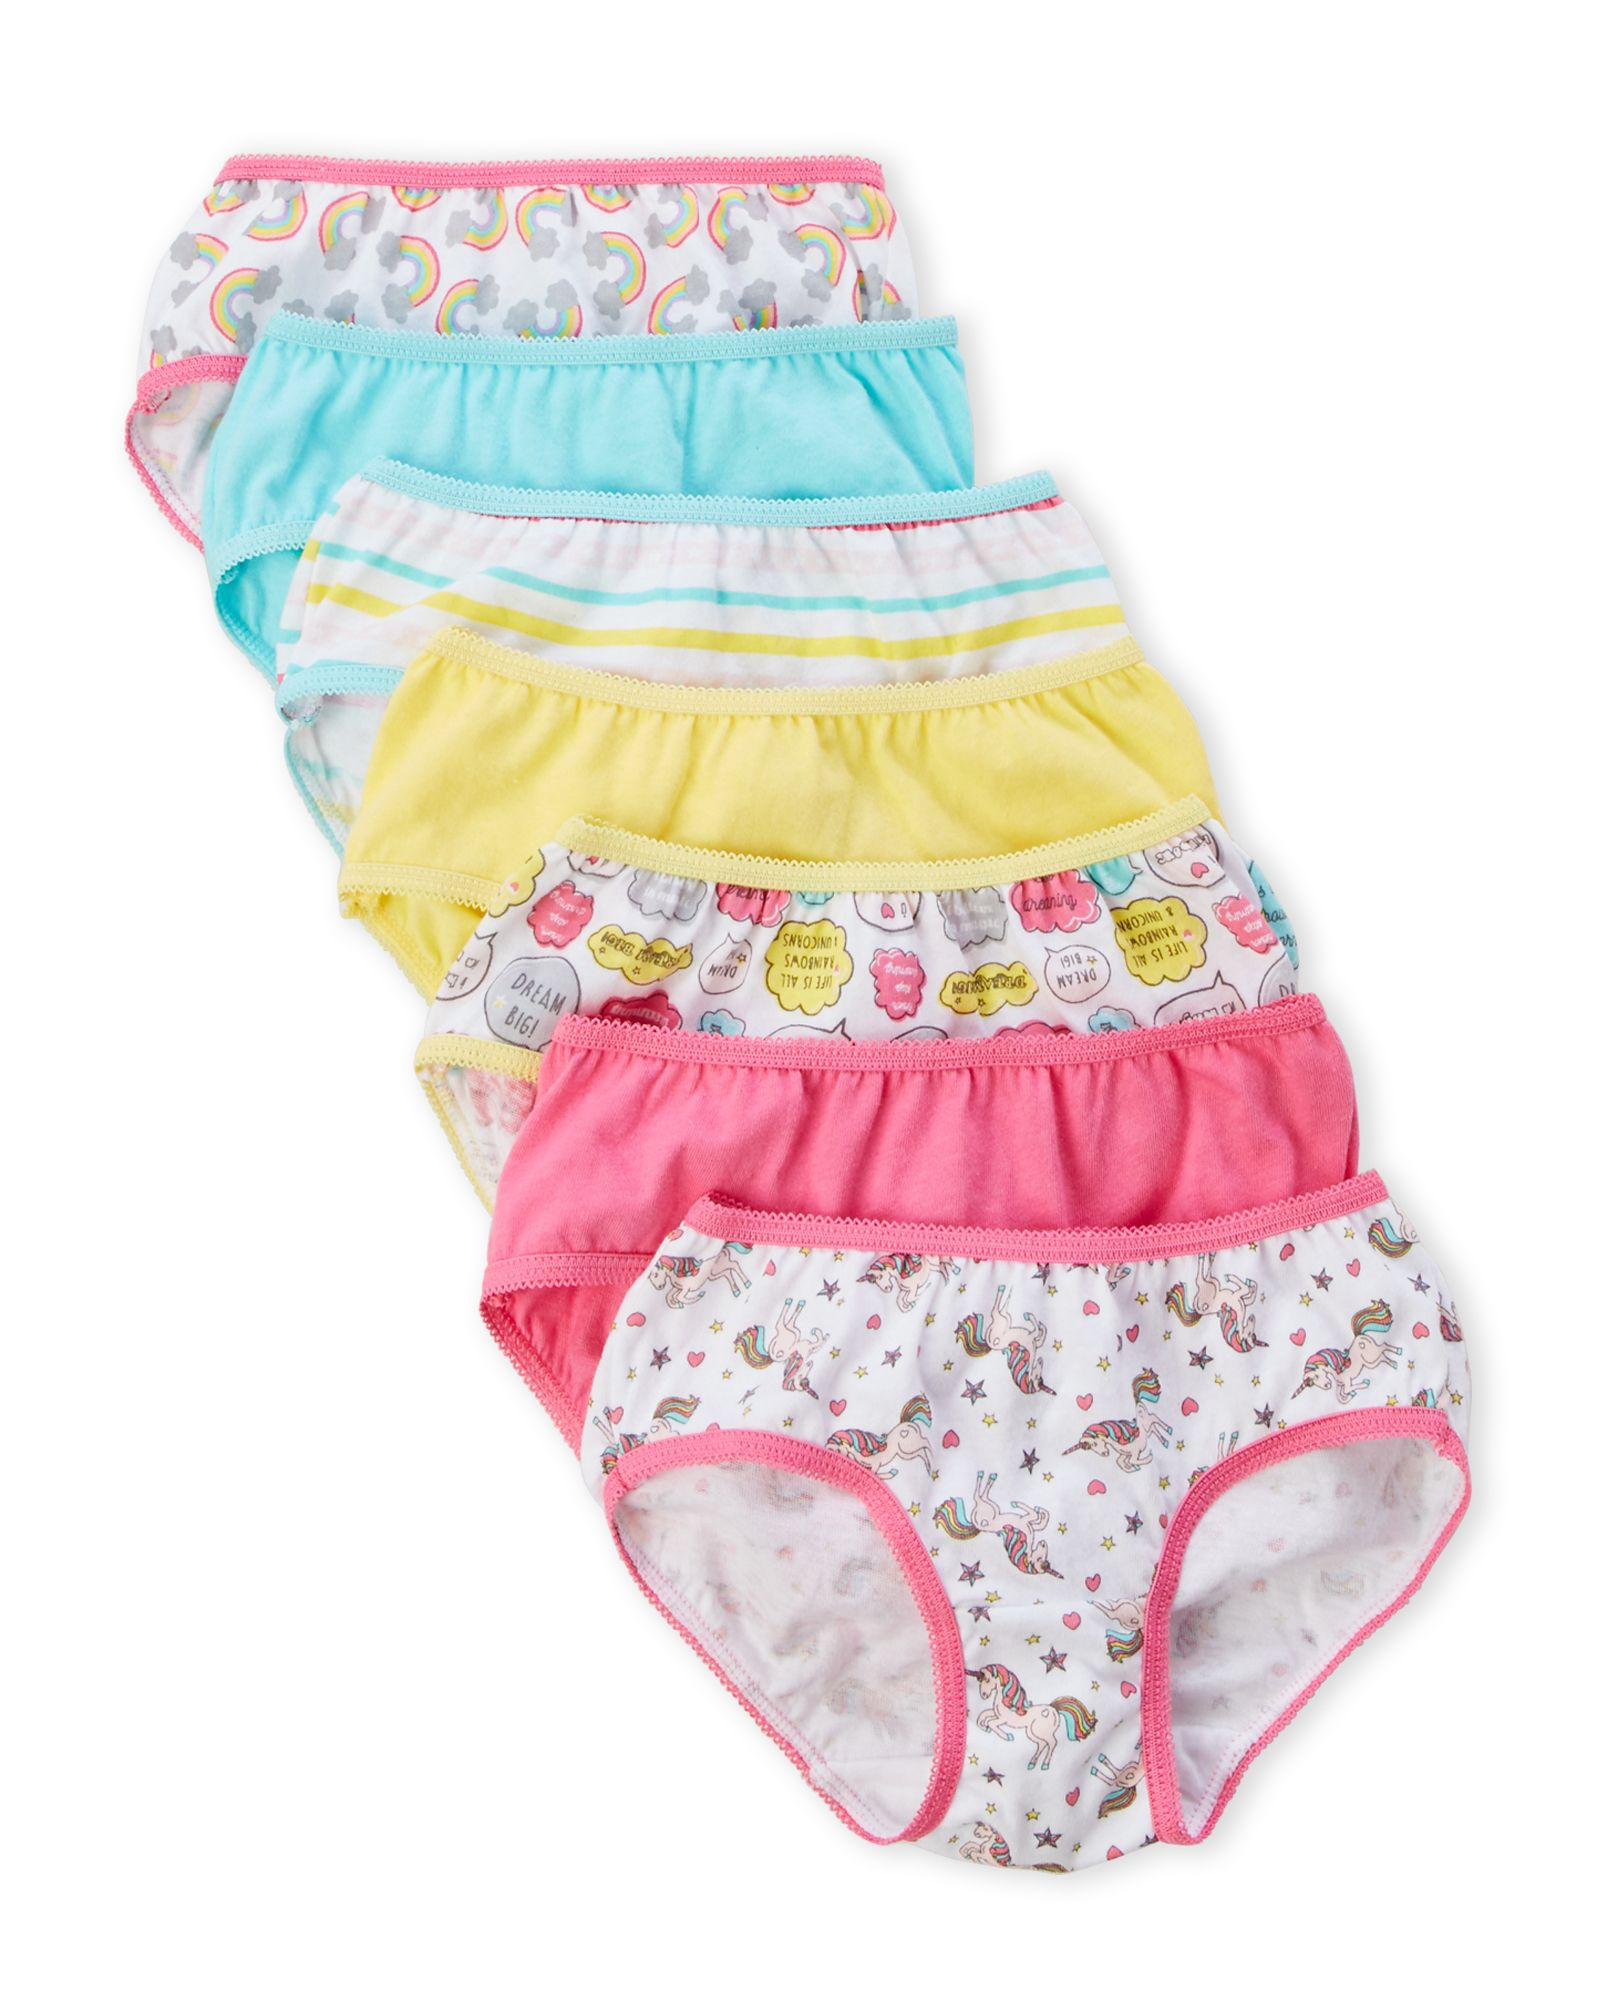 Rene Rofe Toddler Girls 7 Pack Unicorn Panties